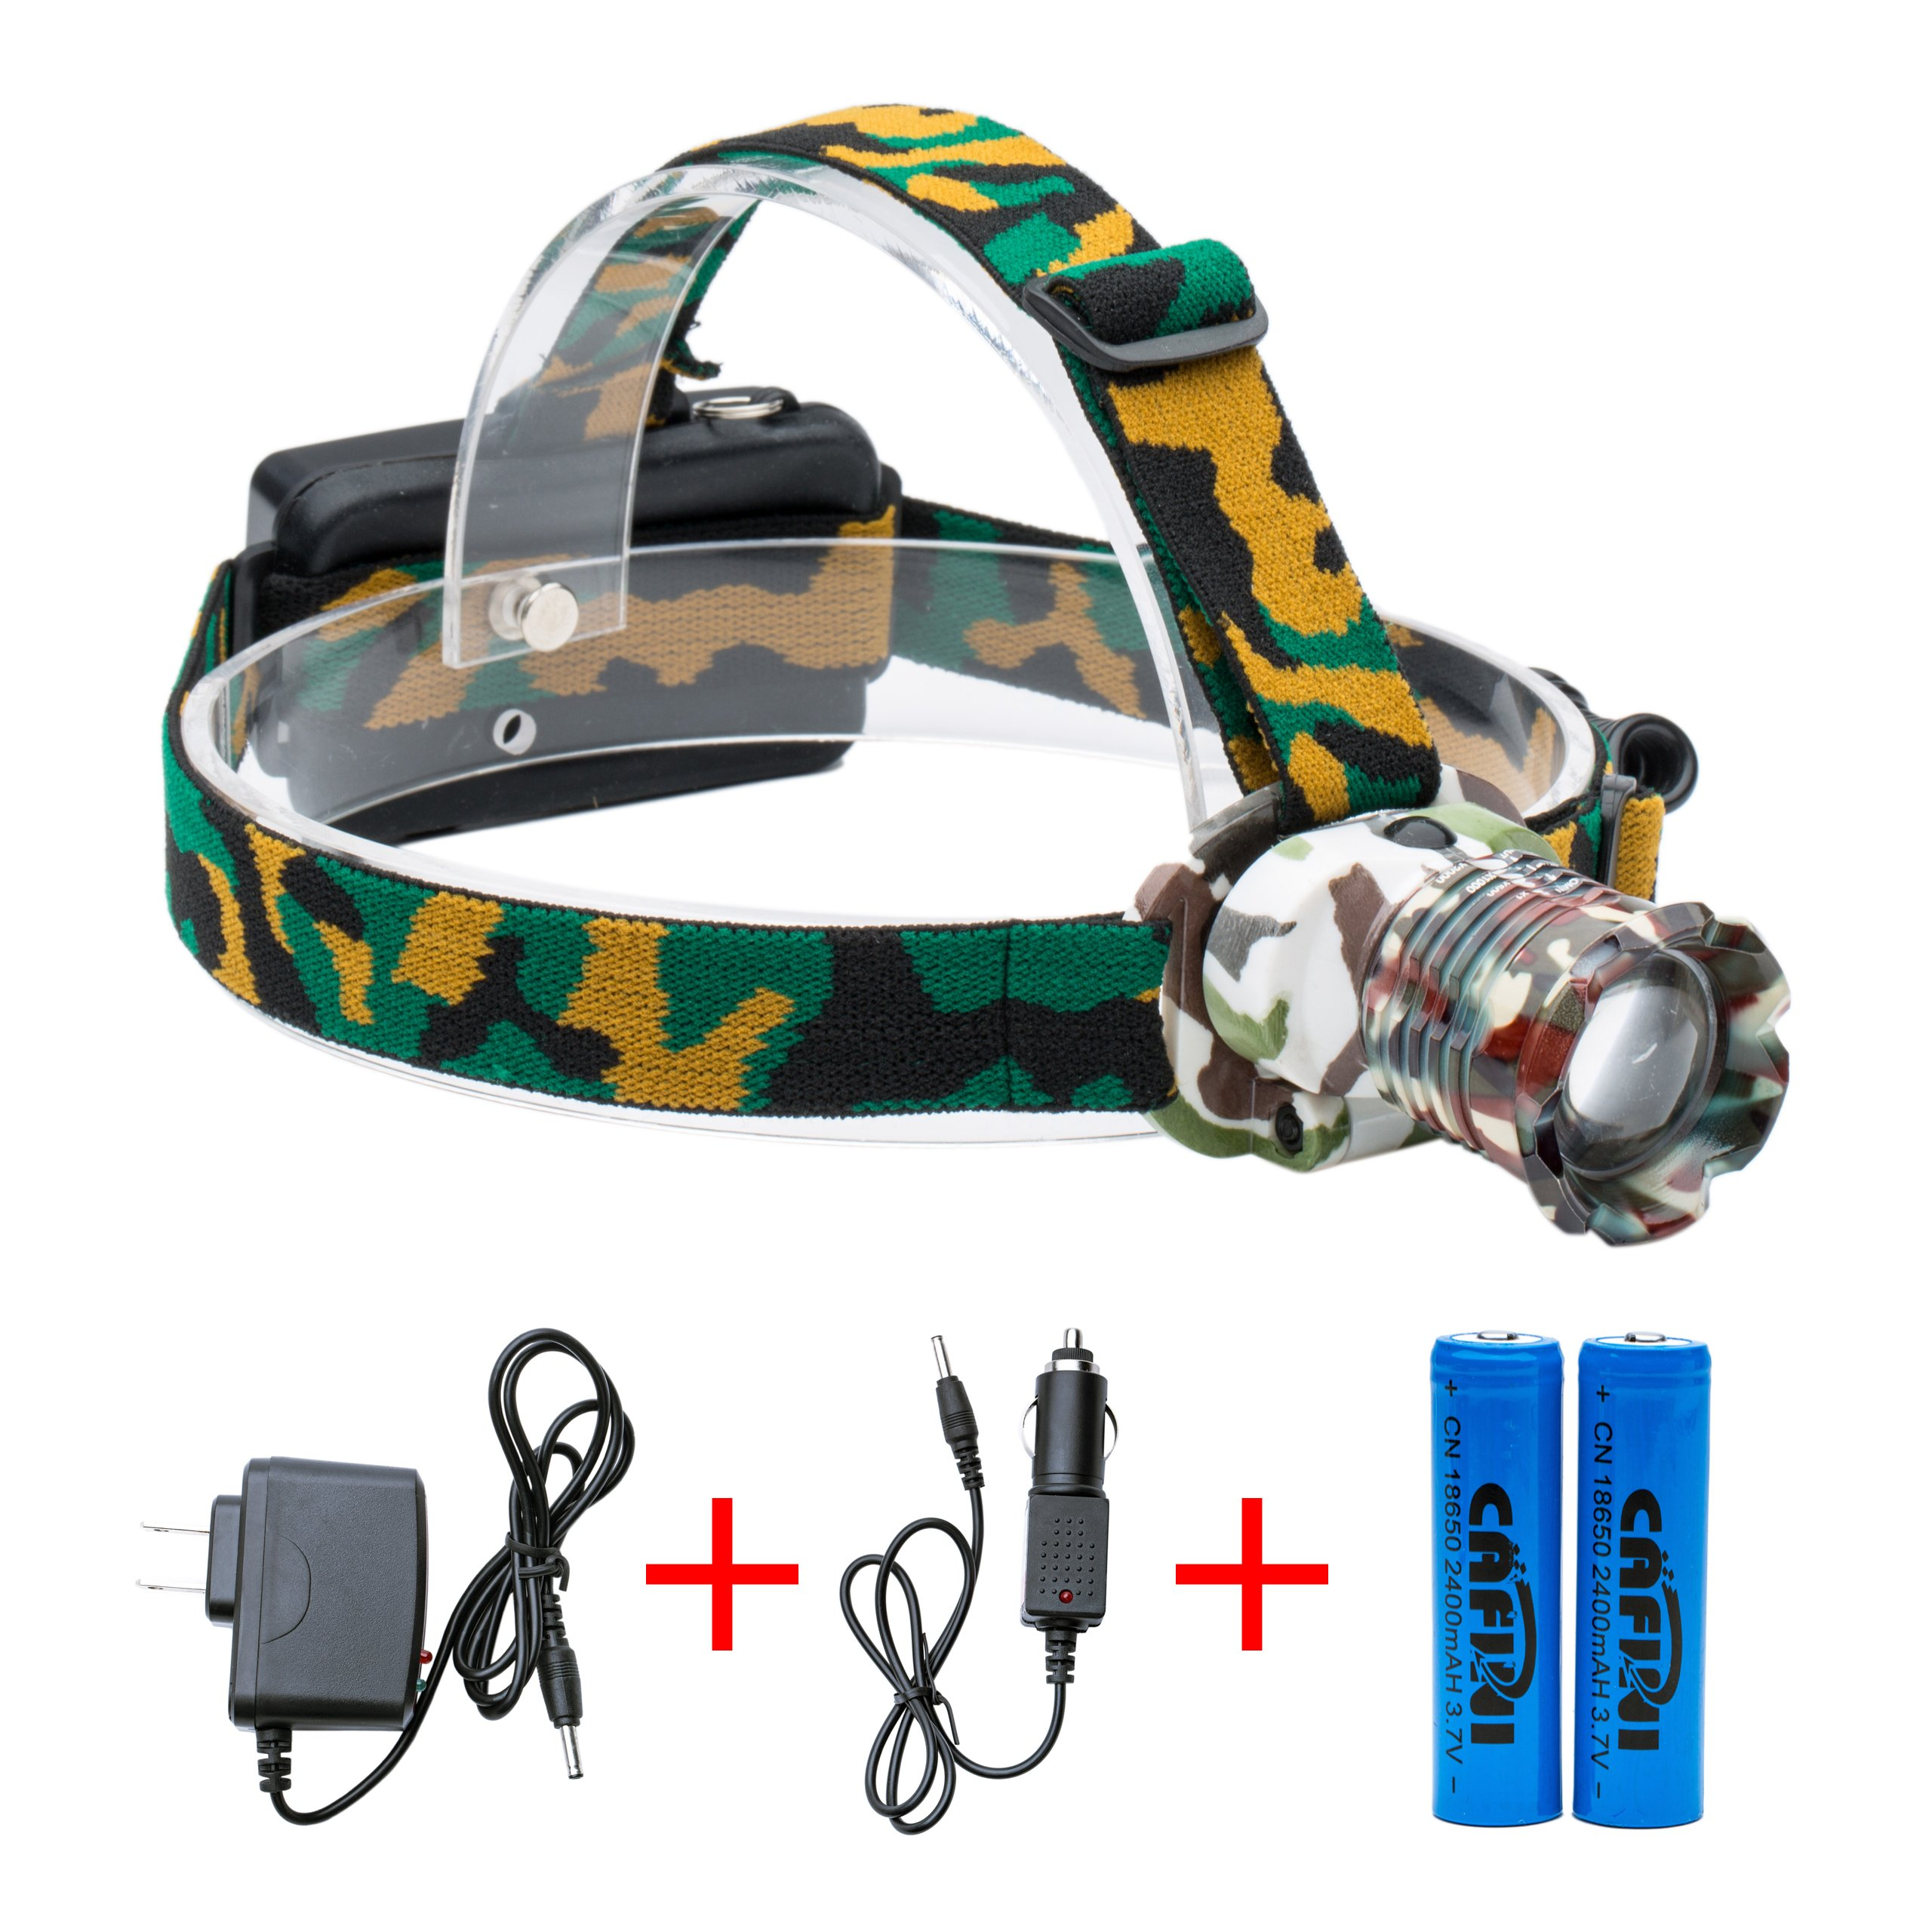 Cafini LED Headlamp Flashlight Kit, 2000-Lumen Super Bright Headlight with Zoomable Head, Red Safety Light,3 Modes, Waterproof Light for Camping, Biking, 2 Rechargeable 18650 Batteries Included